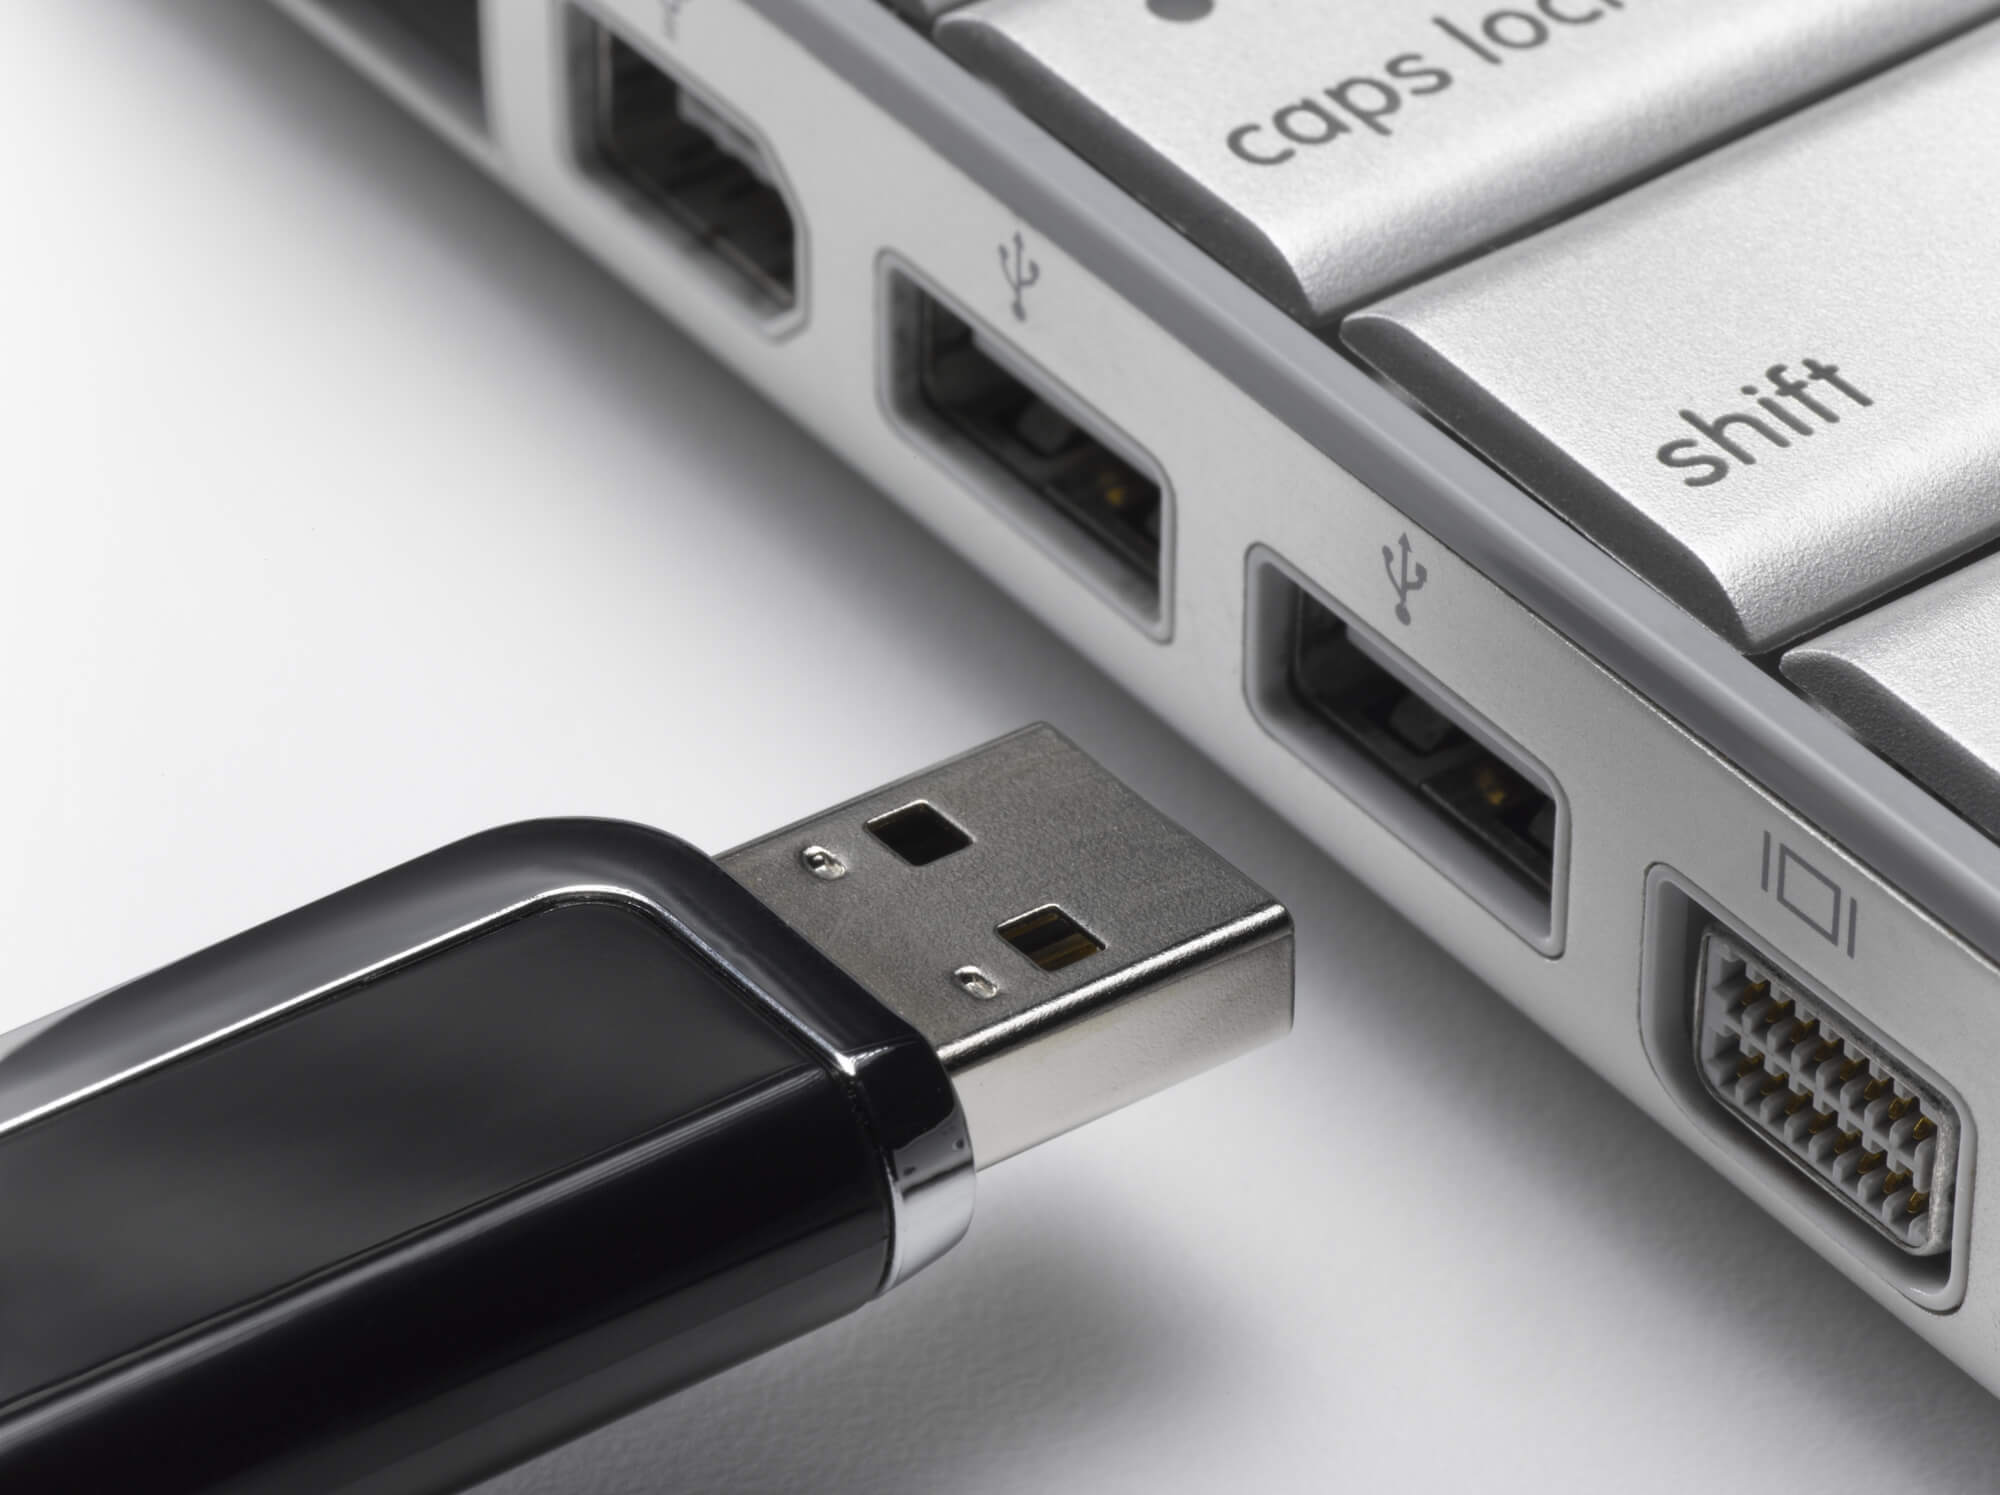 How to Boot from USB on Mac, Windows or Linux